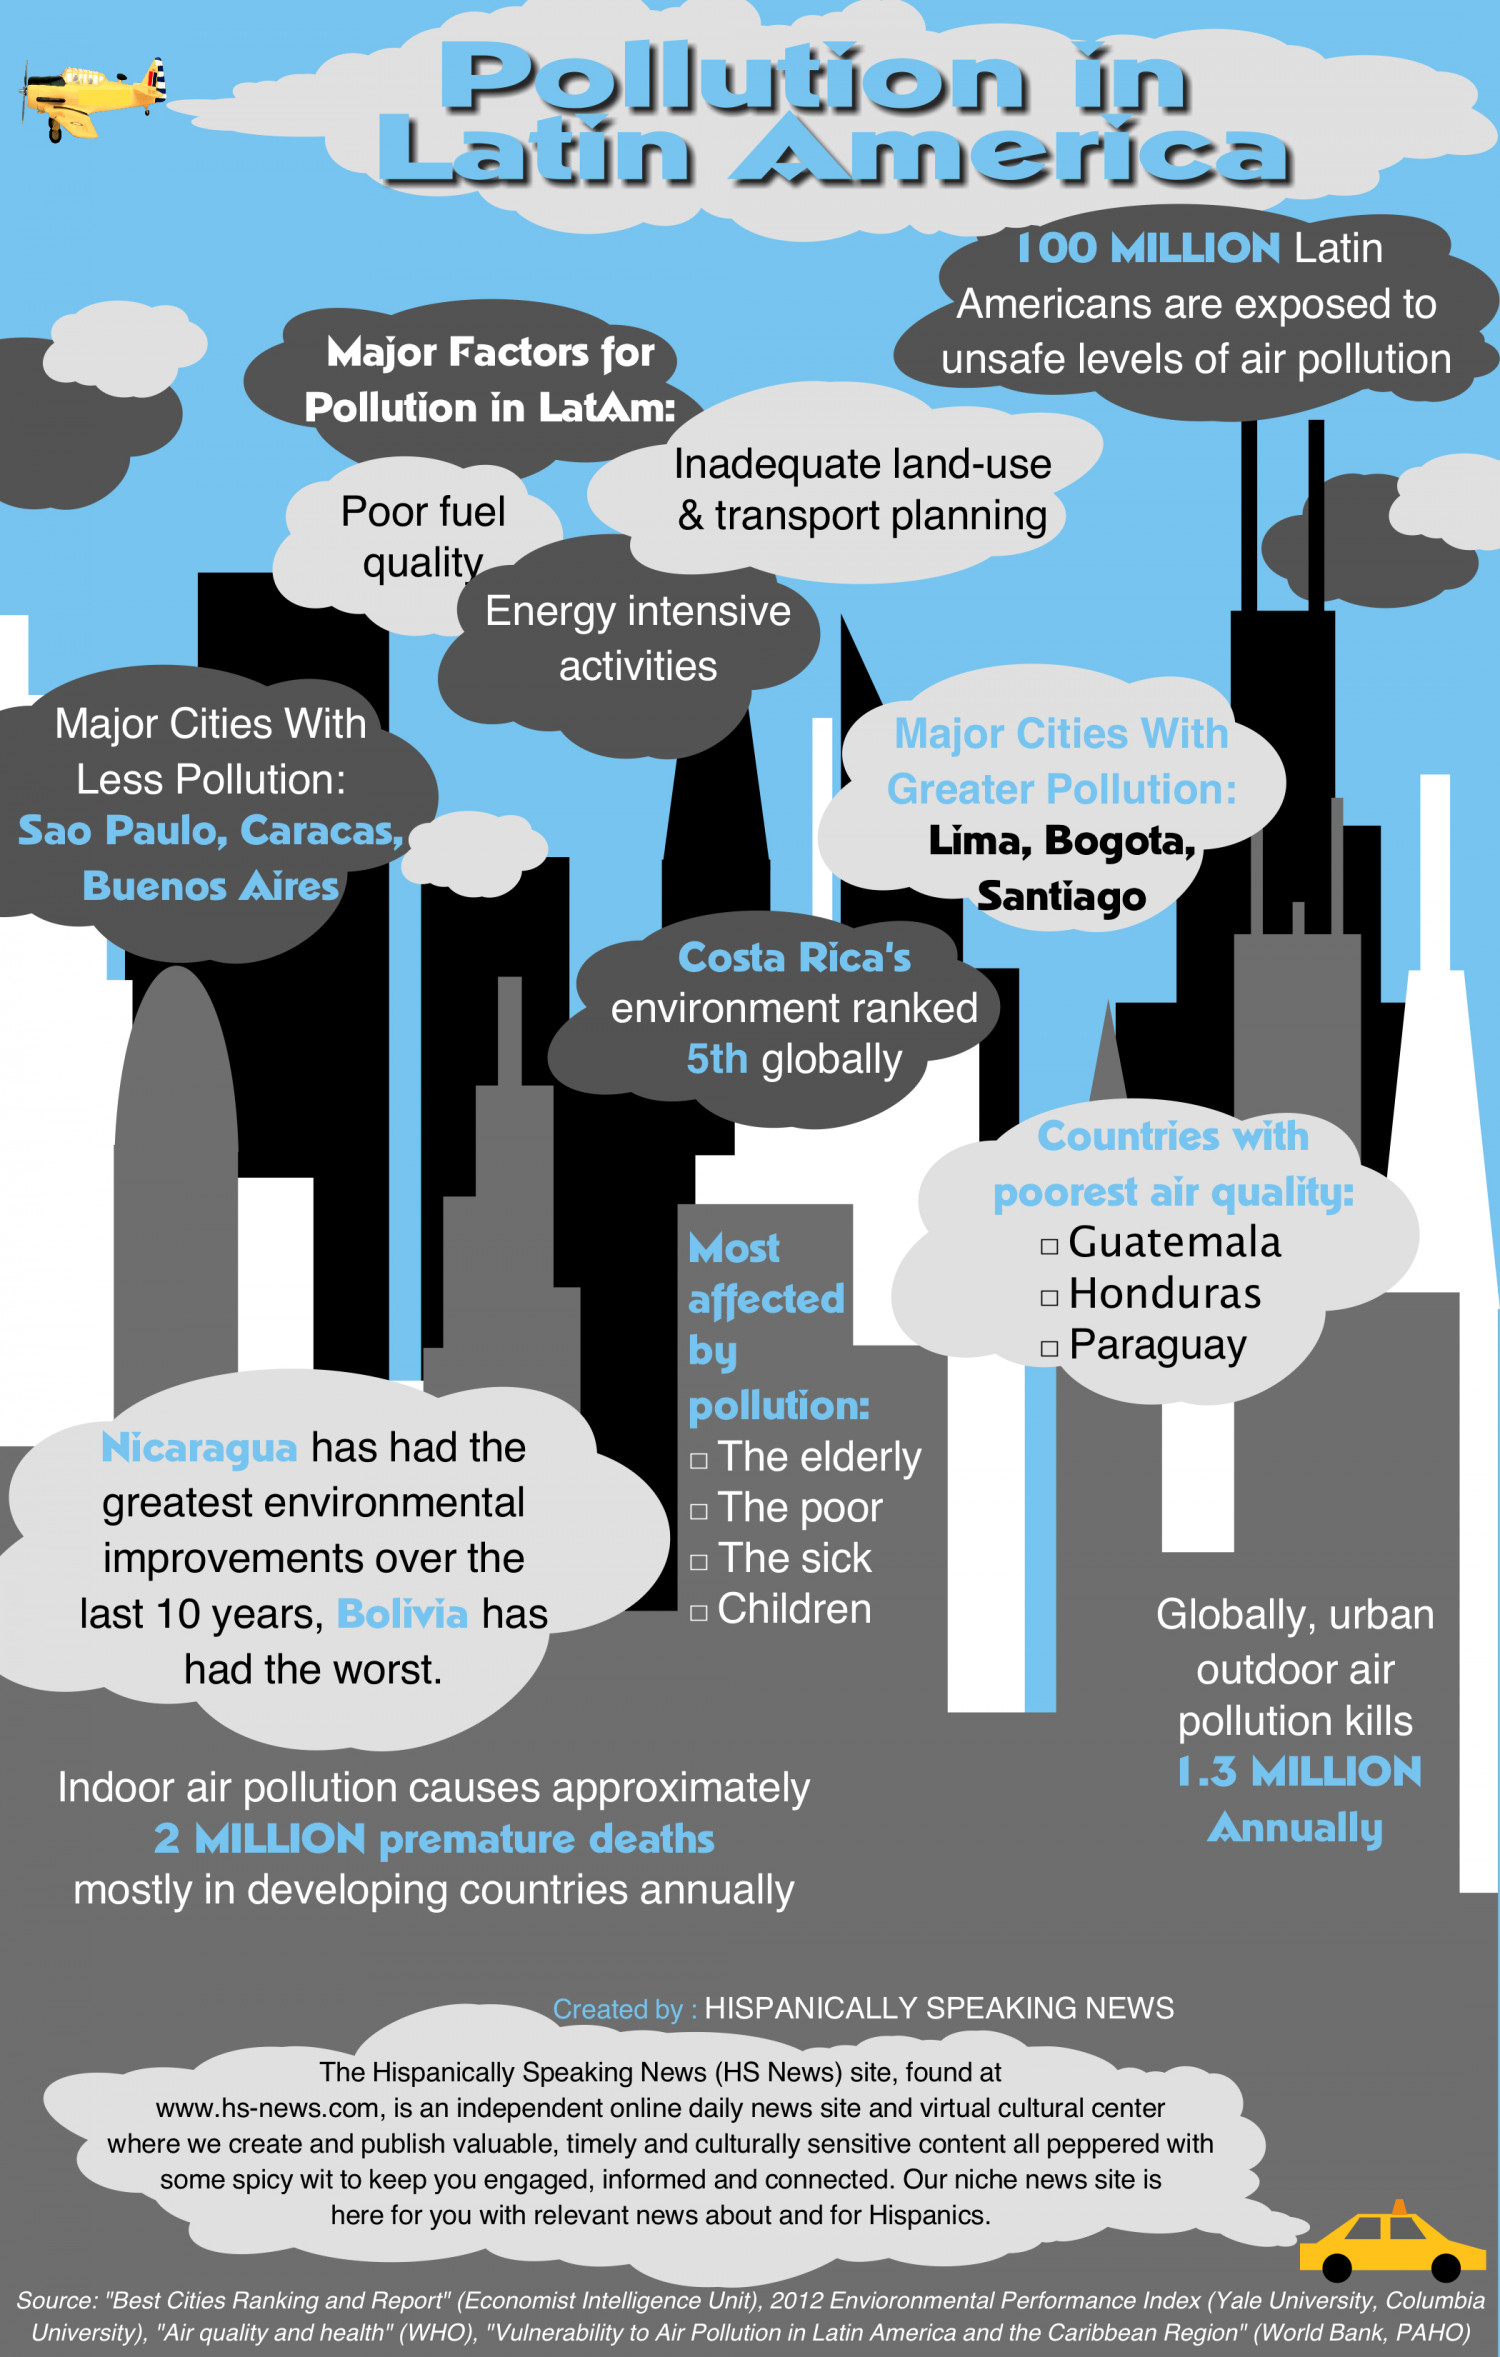 Pollution in Latin America Infographic